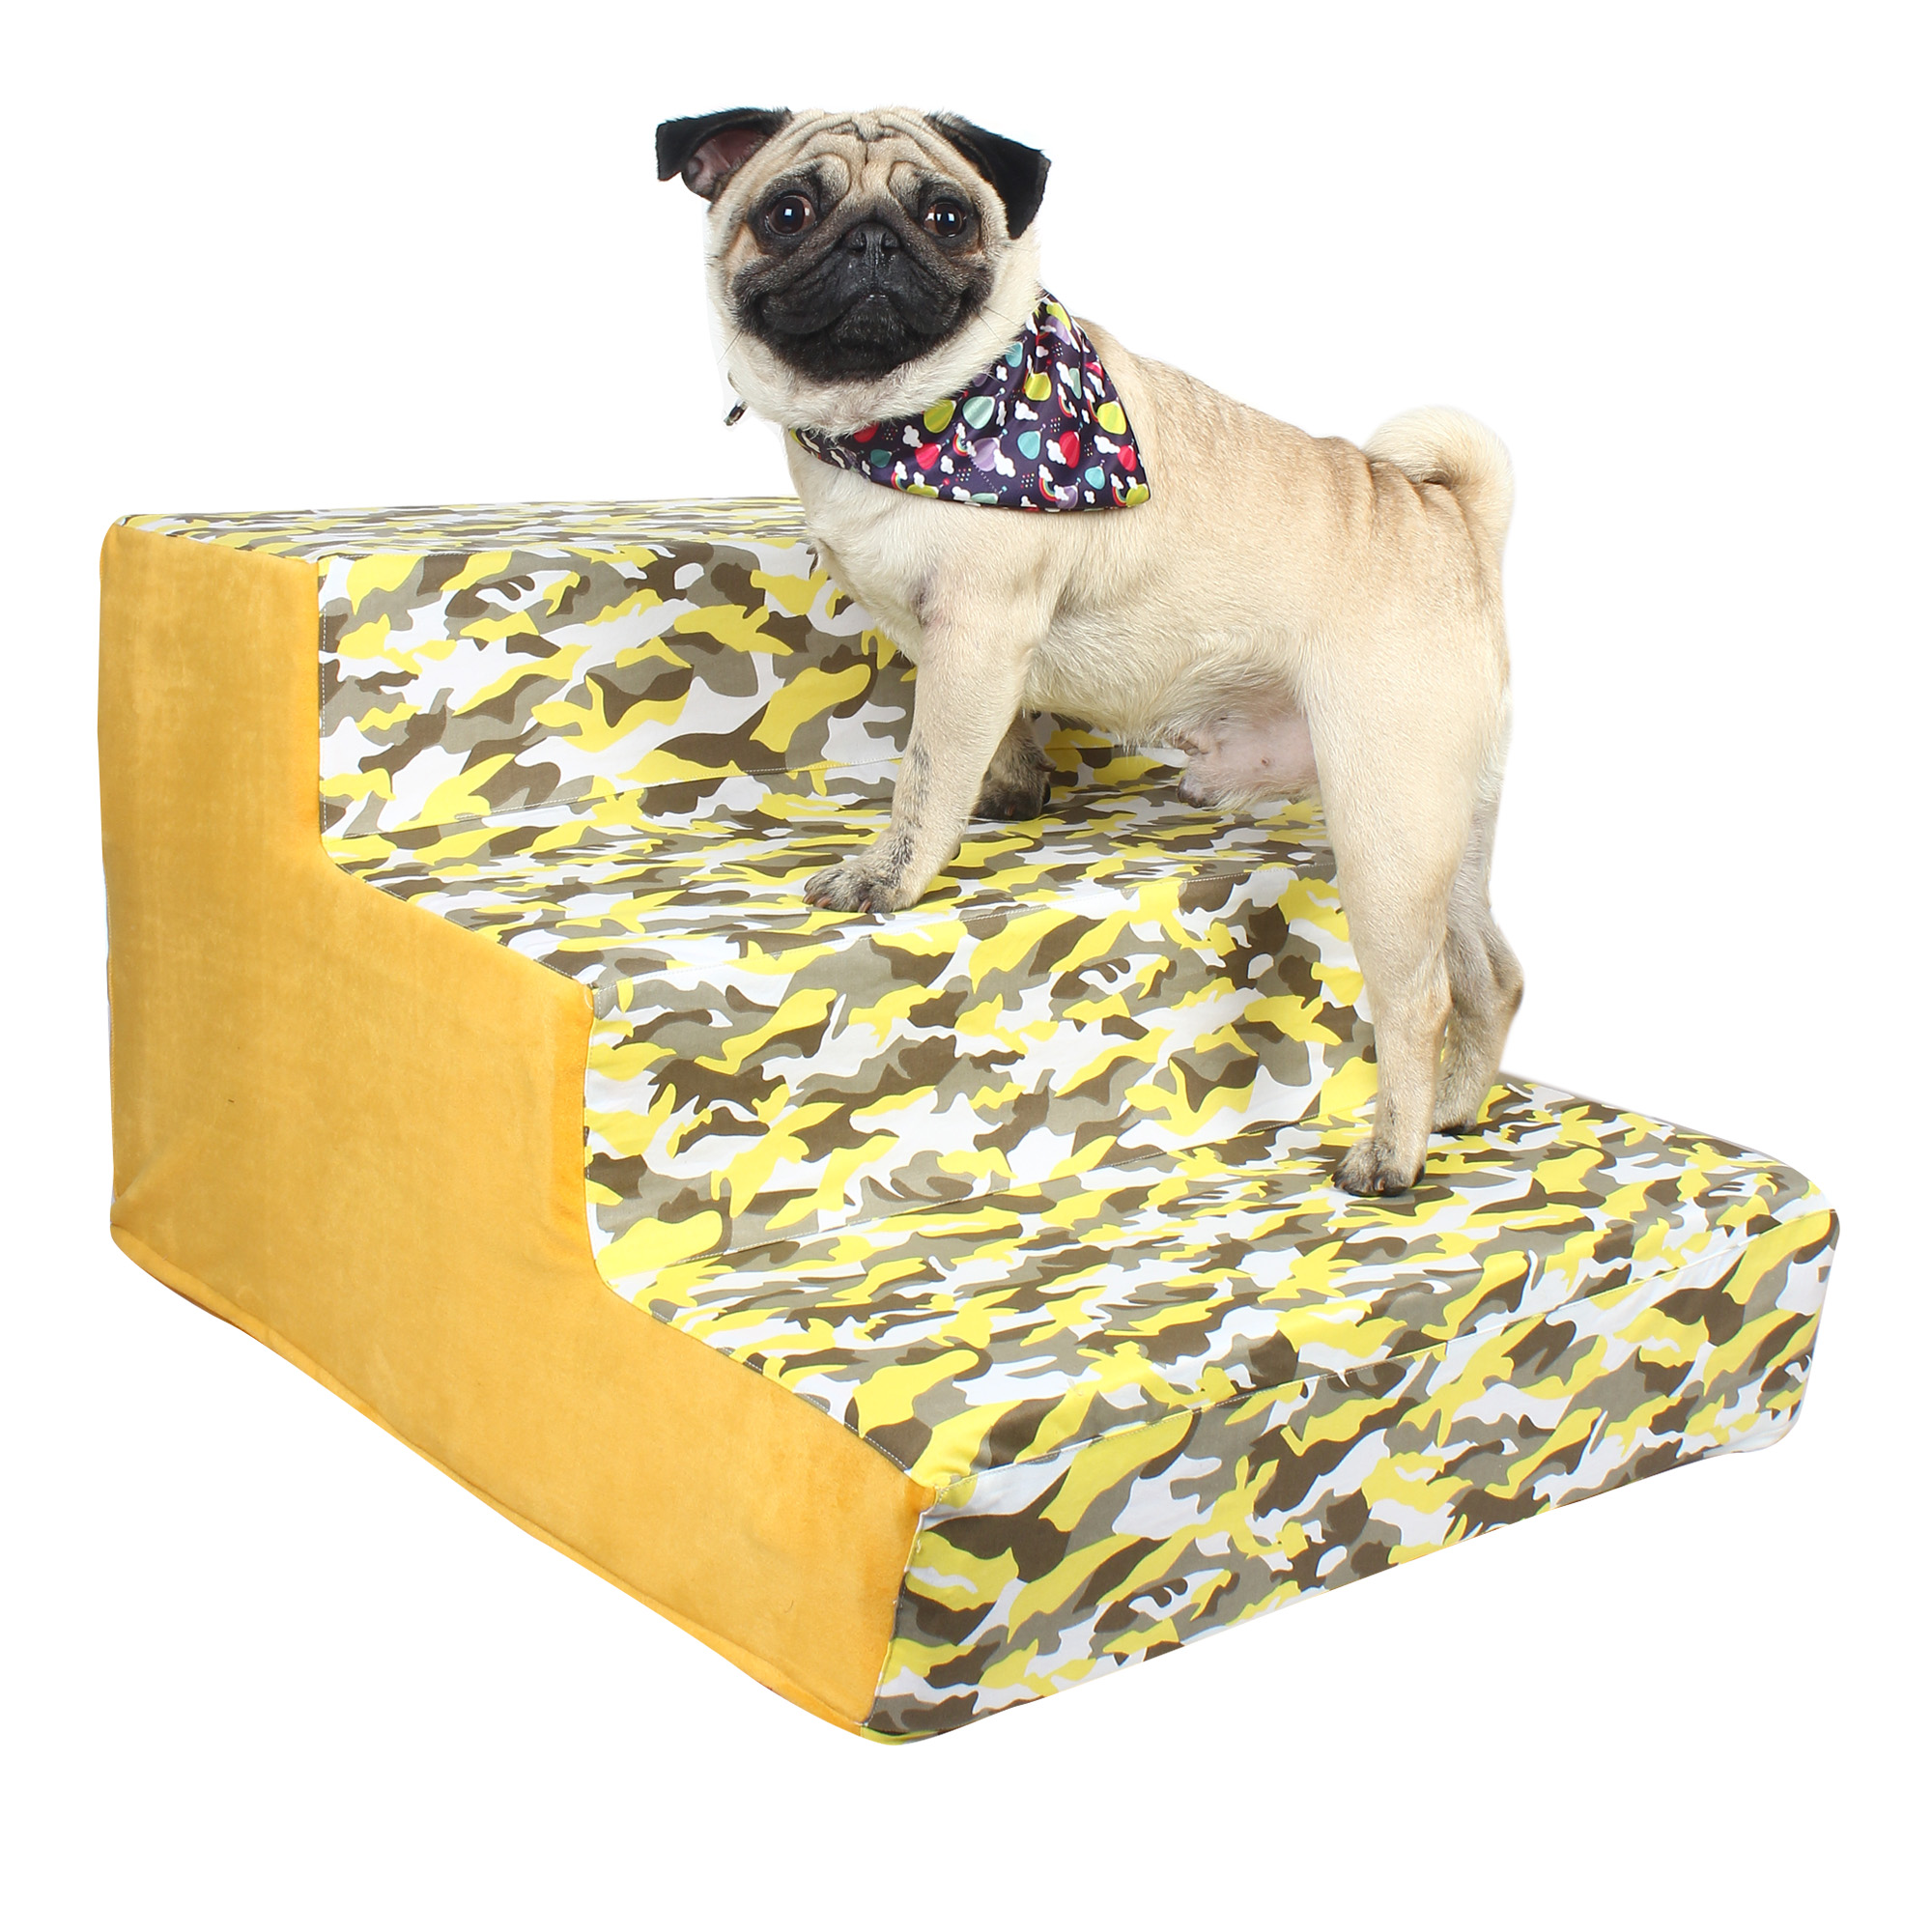 Dog stairs 3 Steps Ramp Ladder yellow army print